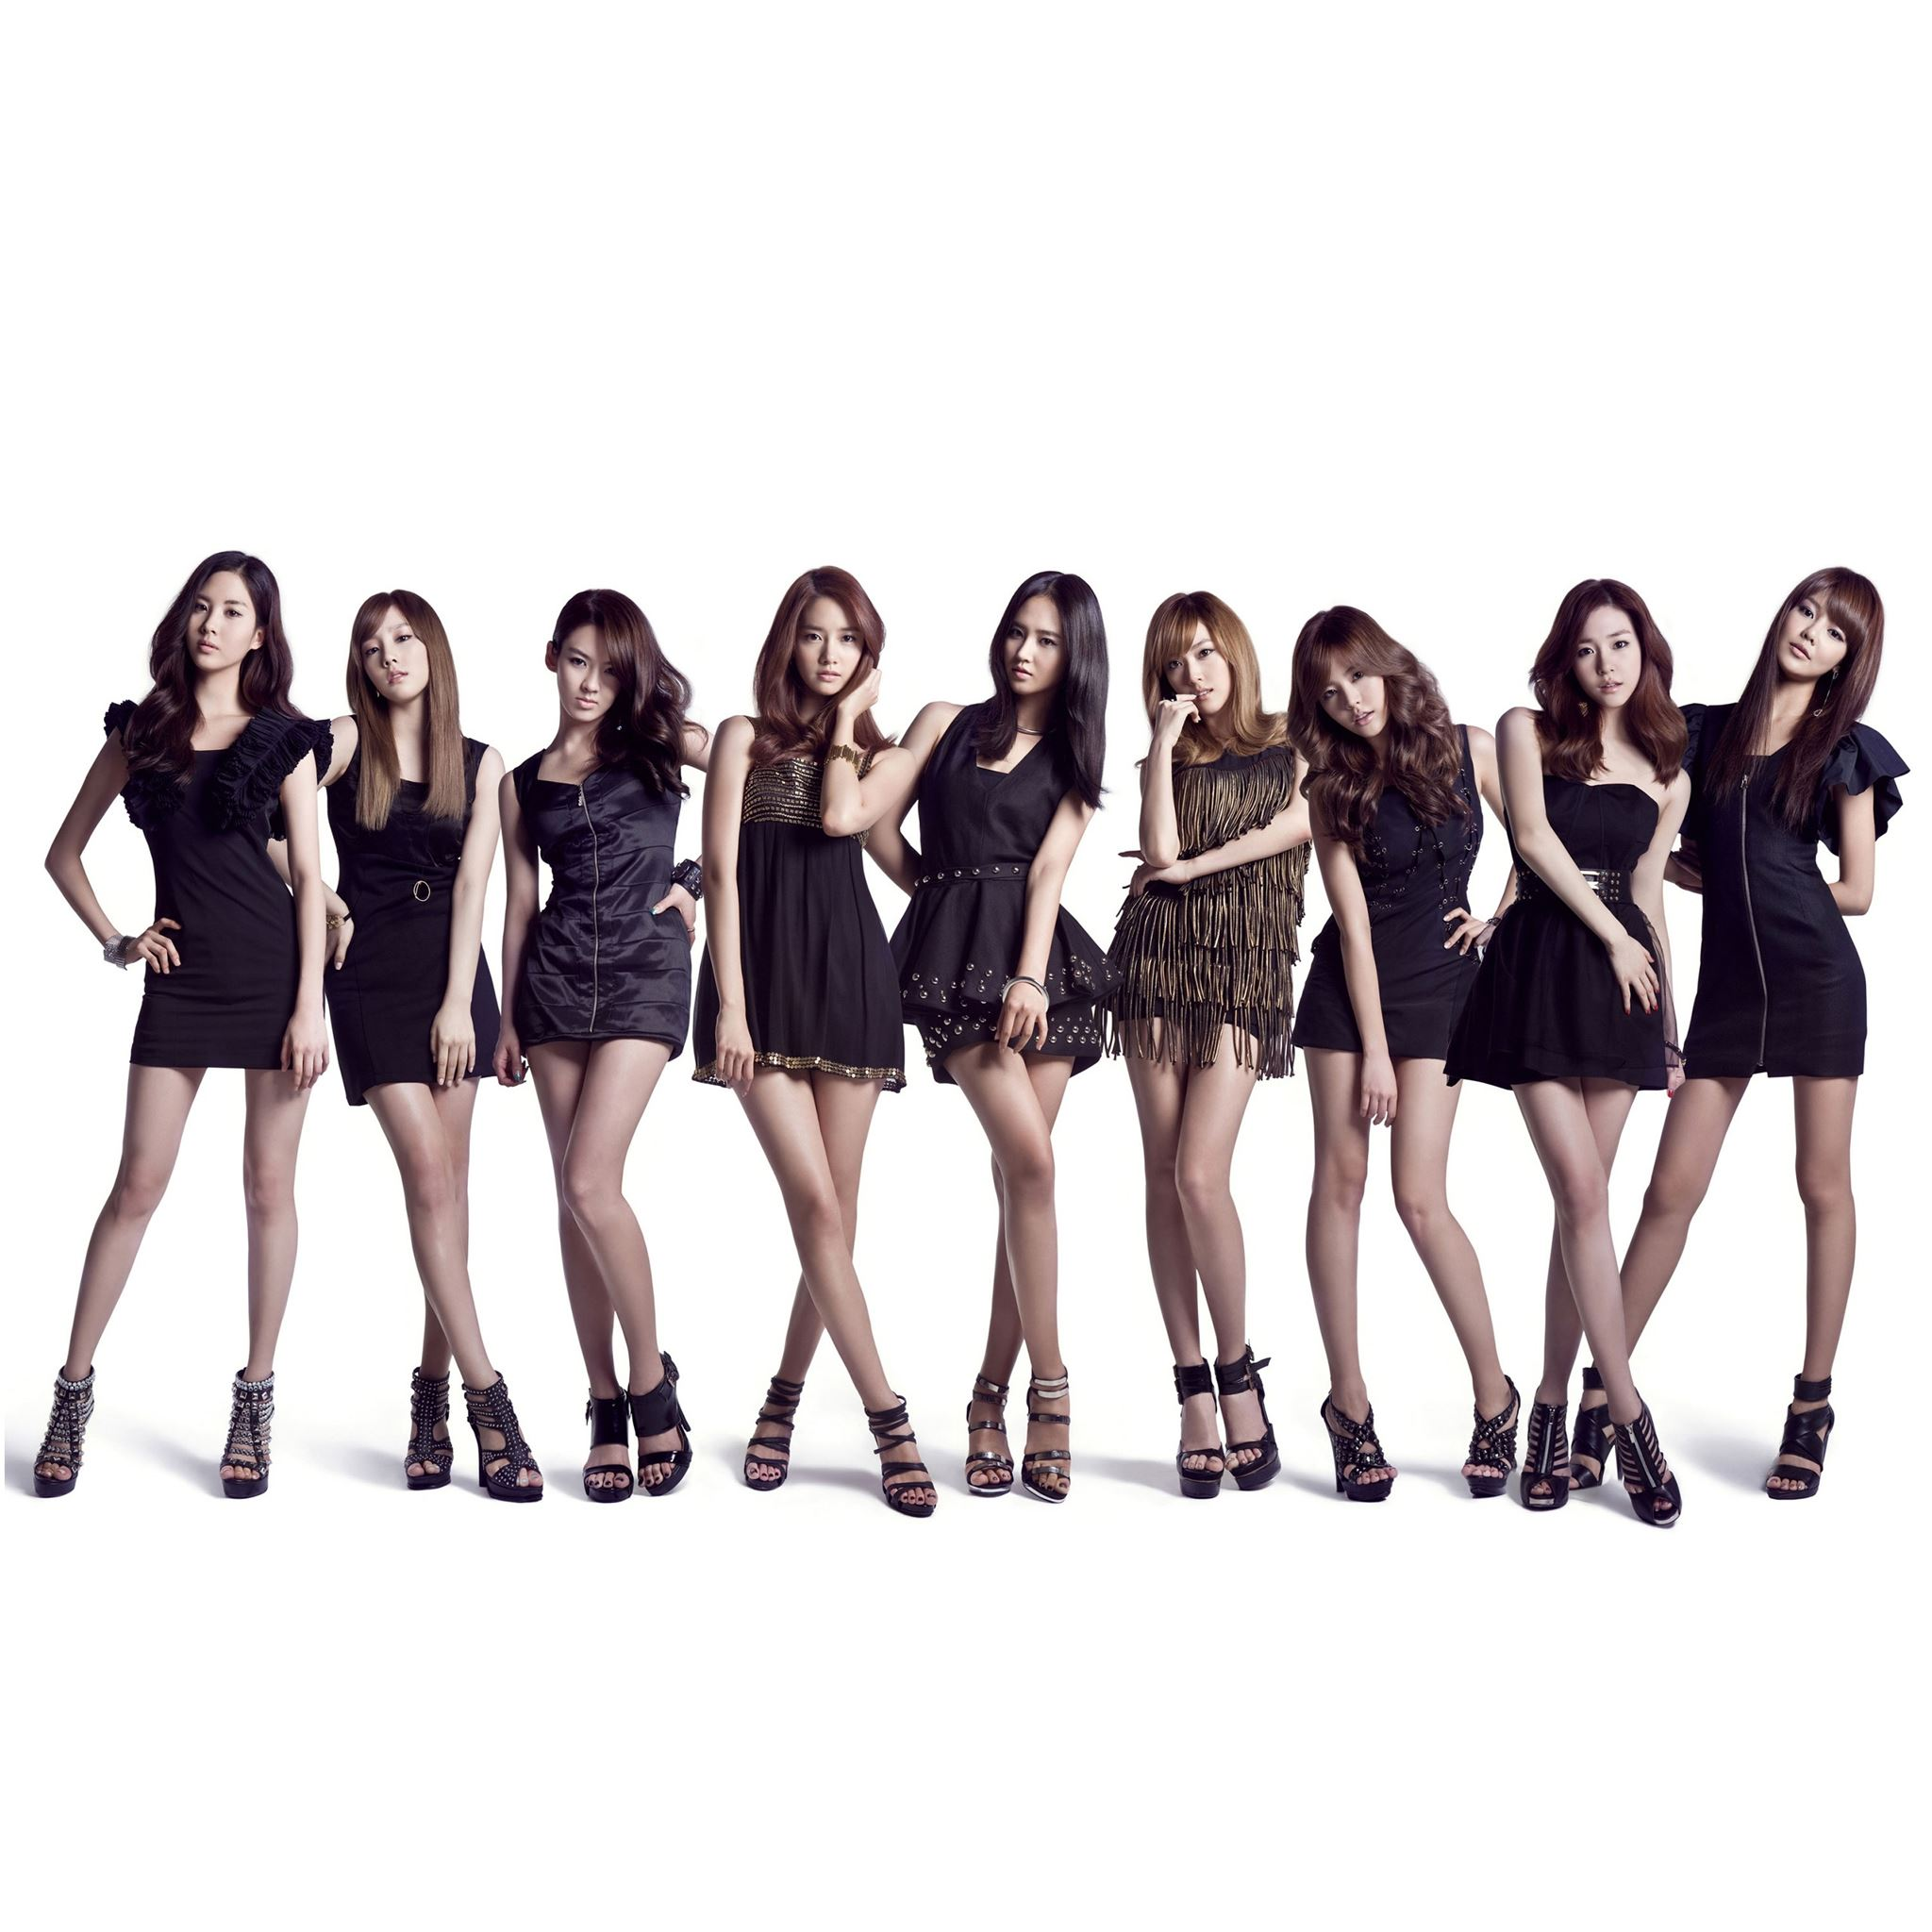 Girls Generation iPad Air wallpaper